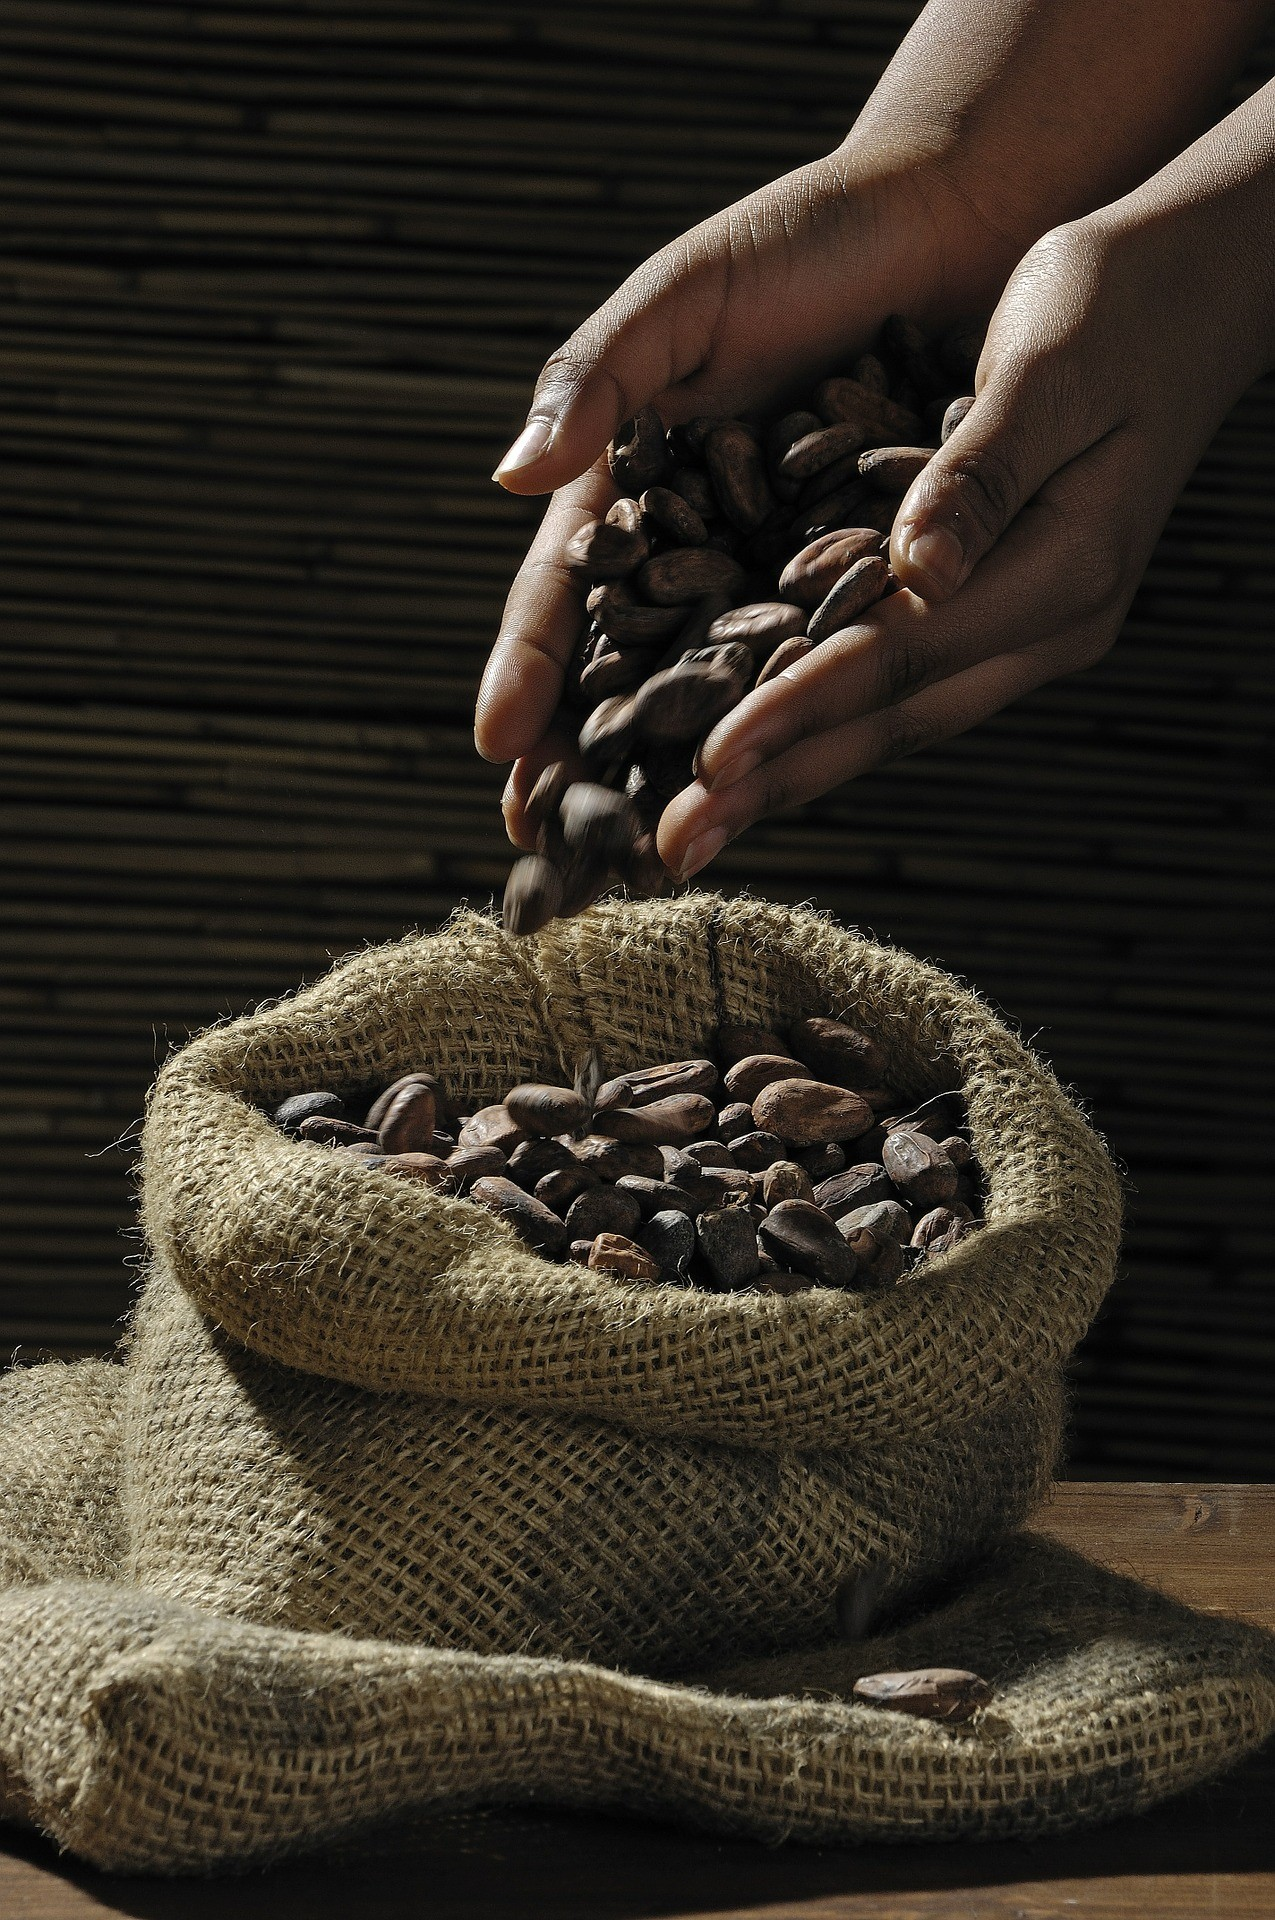 cocoa-beans-499970_1920